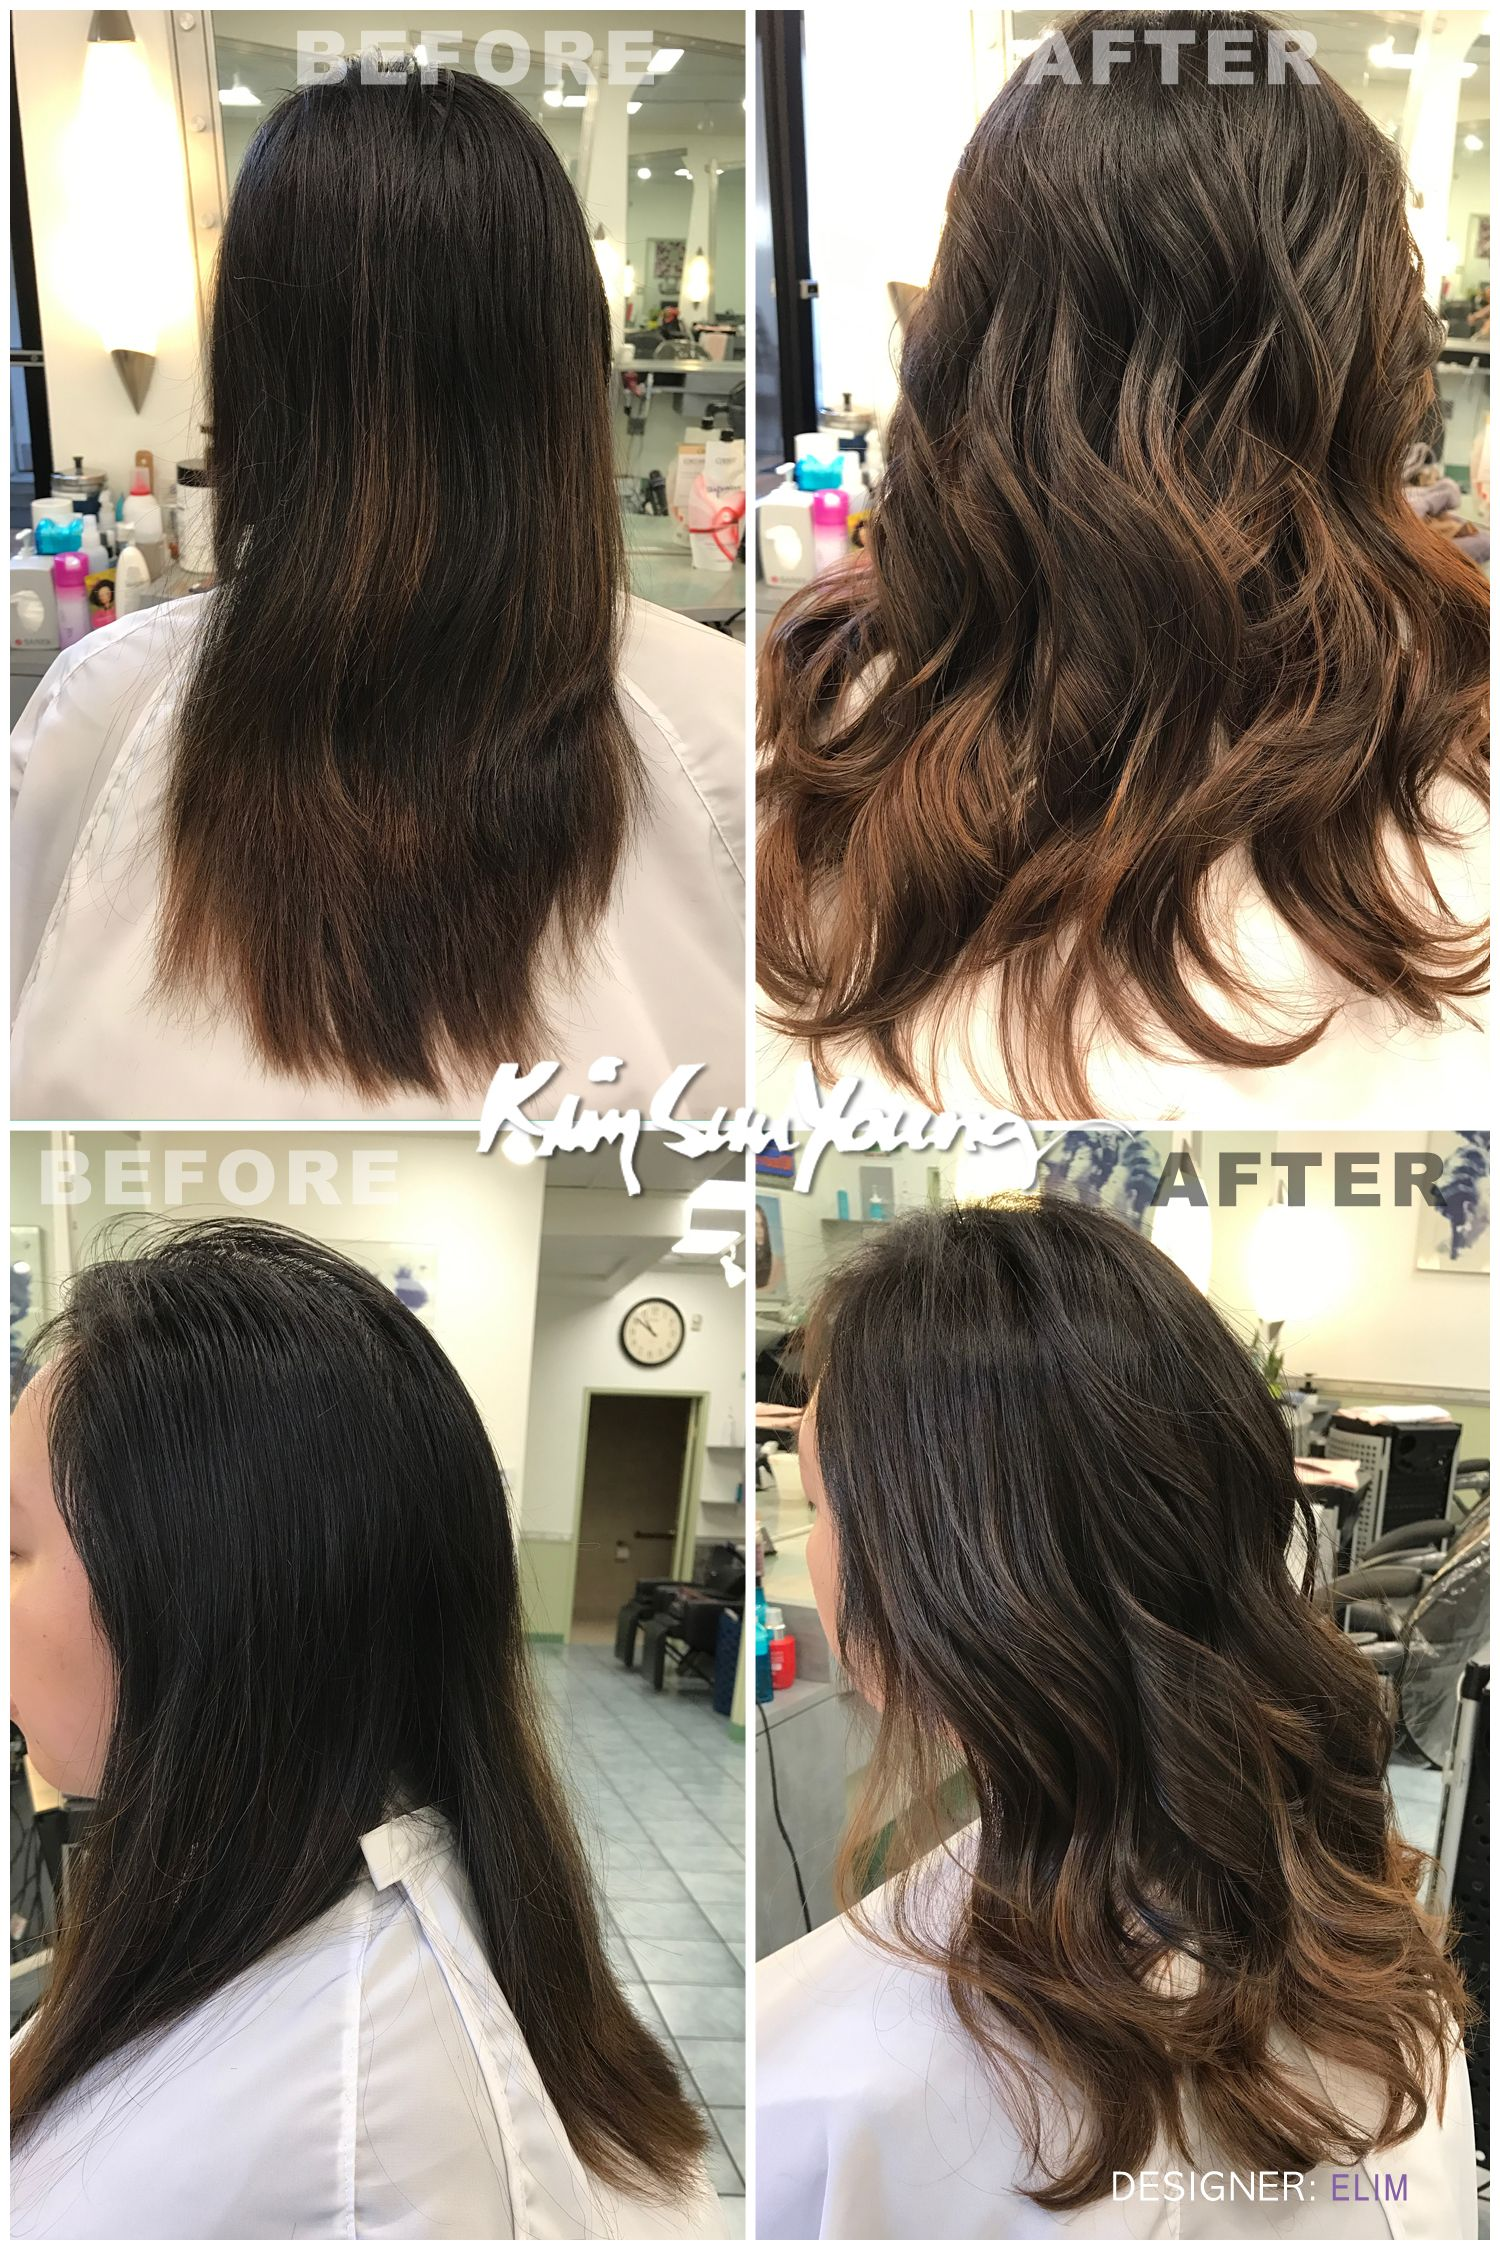 Balayage Perm By Elim At Ksy Kim Sun Young Beauty Salon Hair And Beauty Salon Hair Hair Straightening Treatment